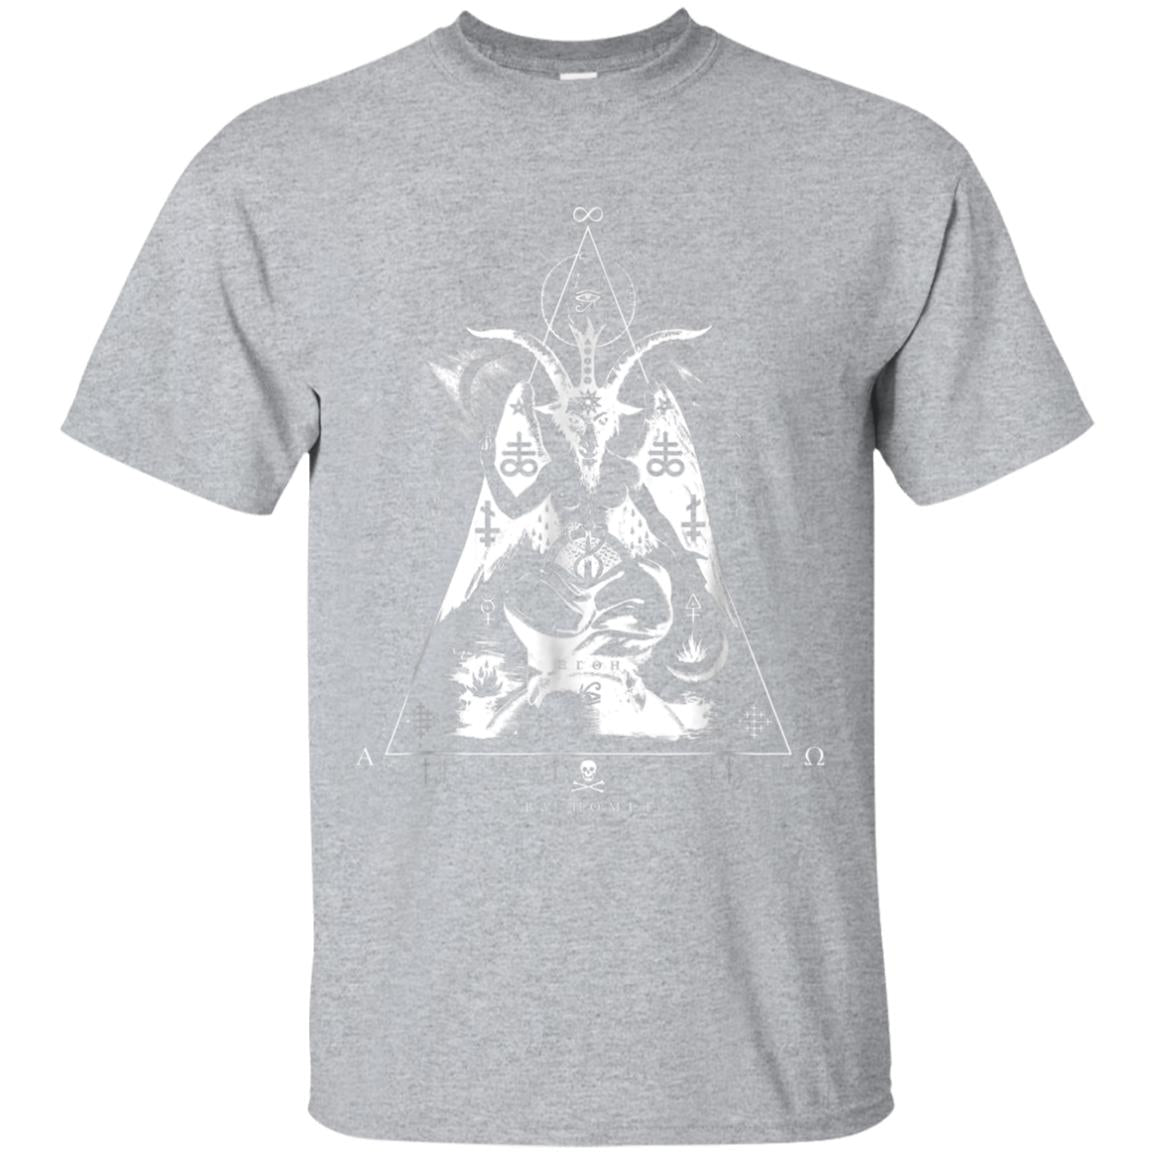 BAPHOMET - As Above So Below Occult Sacred Geometry T-Shirt 99promocode